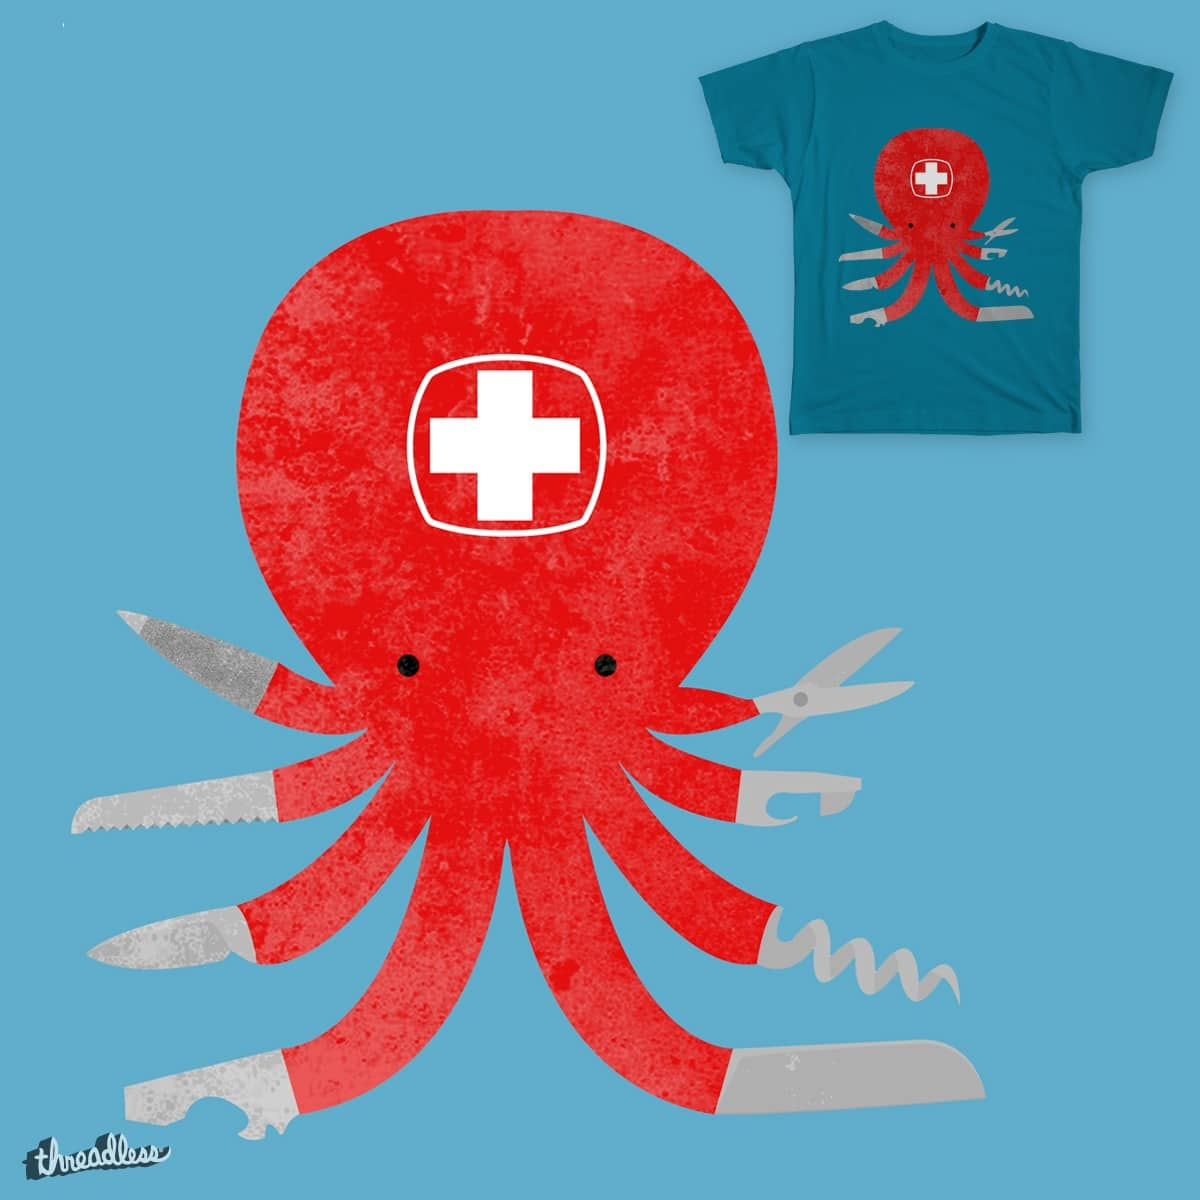 Swiss Octoknife by luka_jk on Threadless